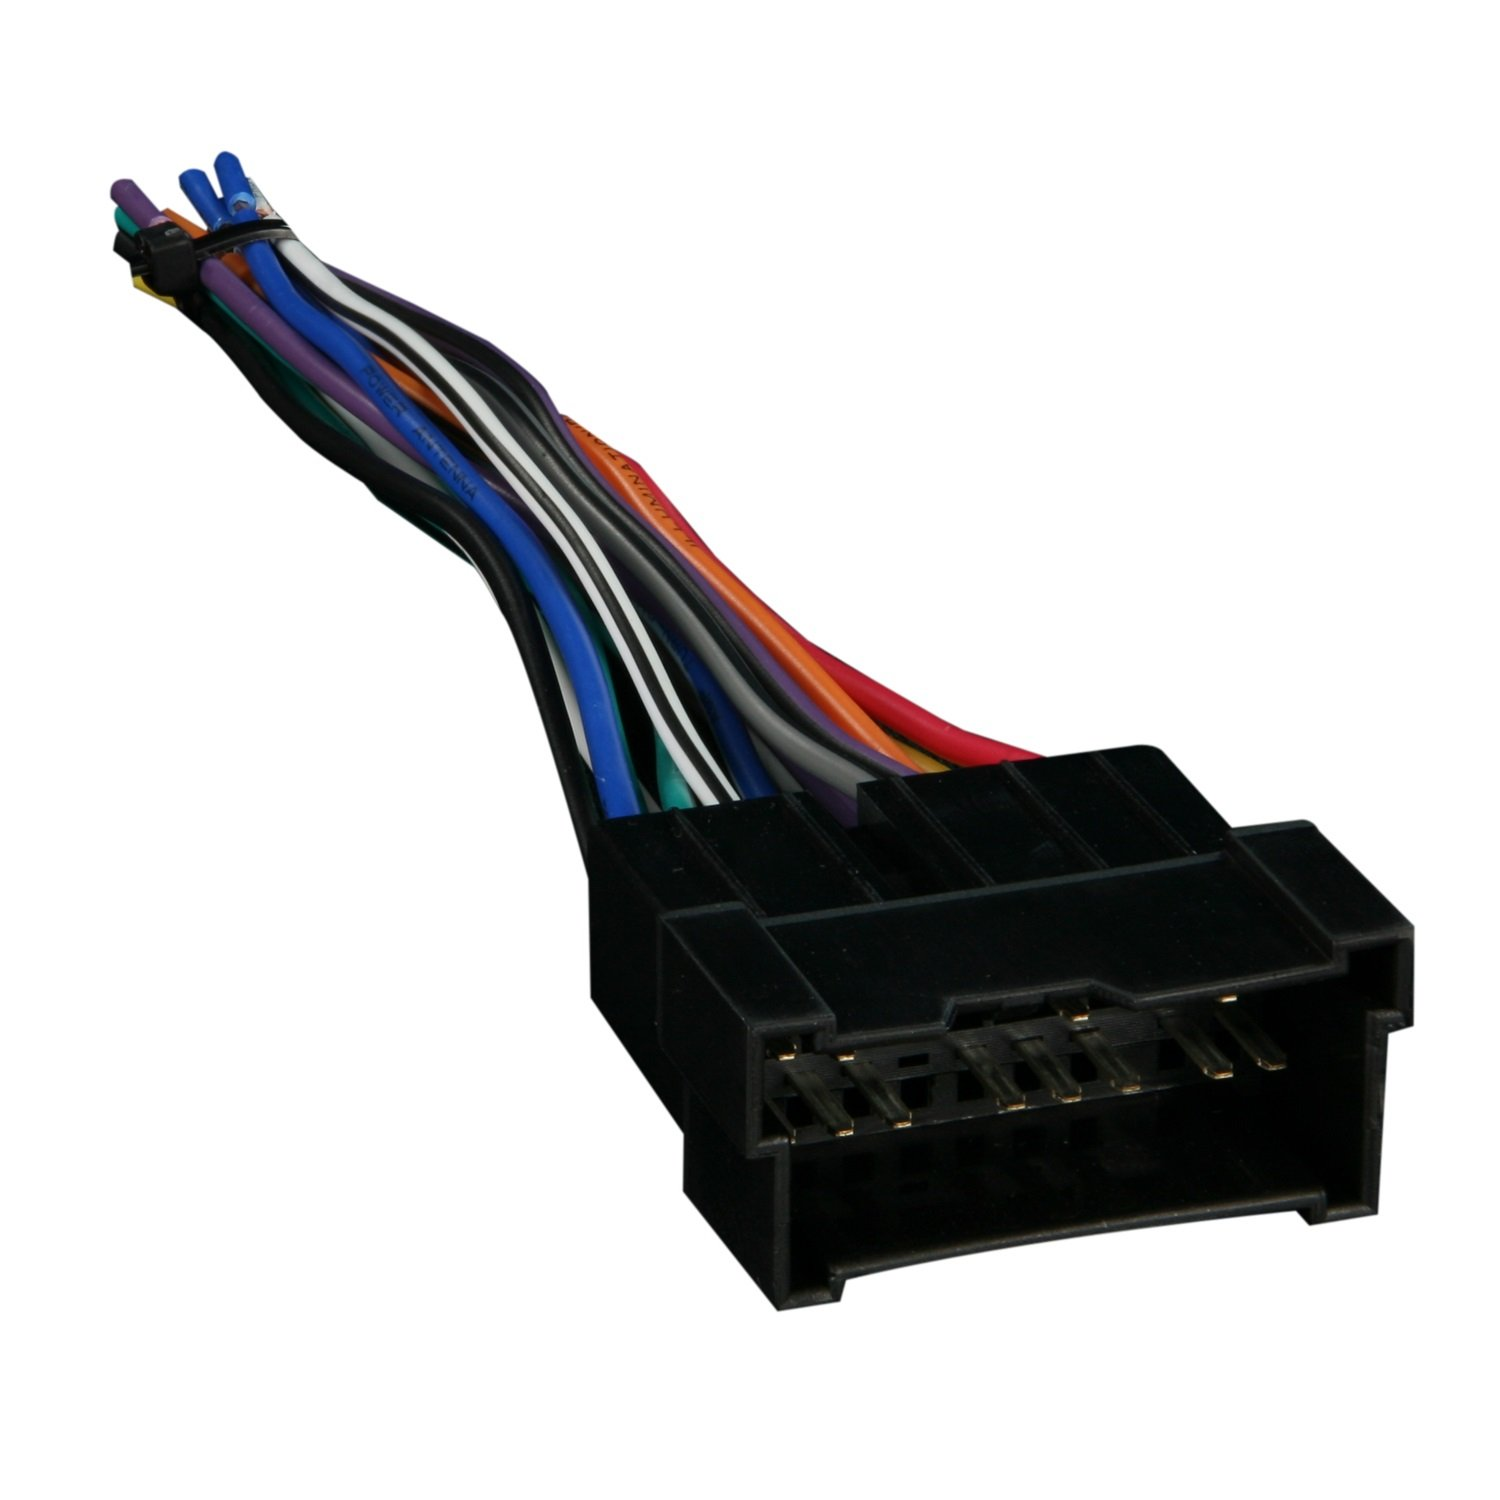 617yeBmOquL._SL1500_ amazon com metra 70 7301 radio wiring harness for hyundai kia 99 jvc wiring harness color coating at suagrazia.org